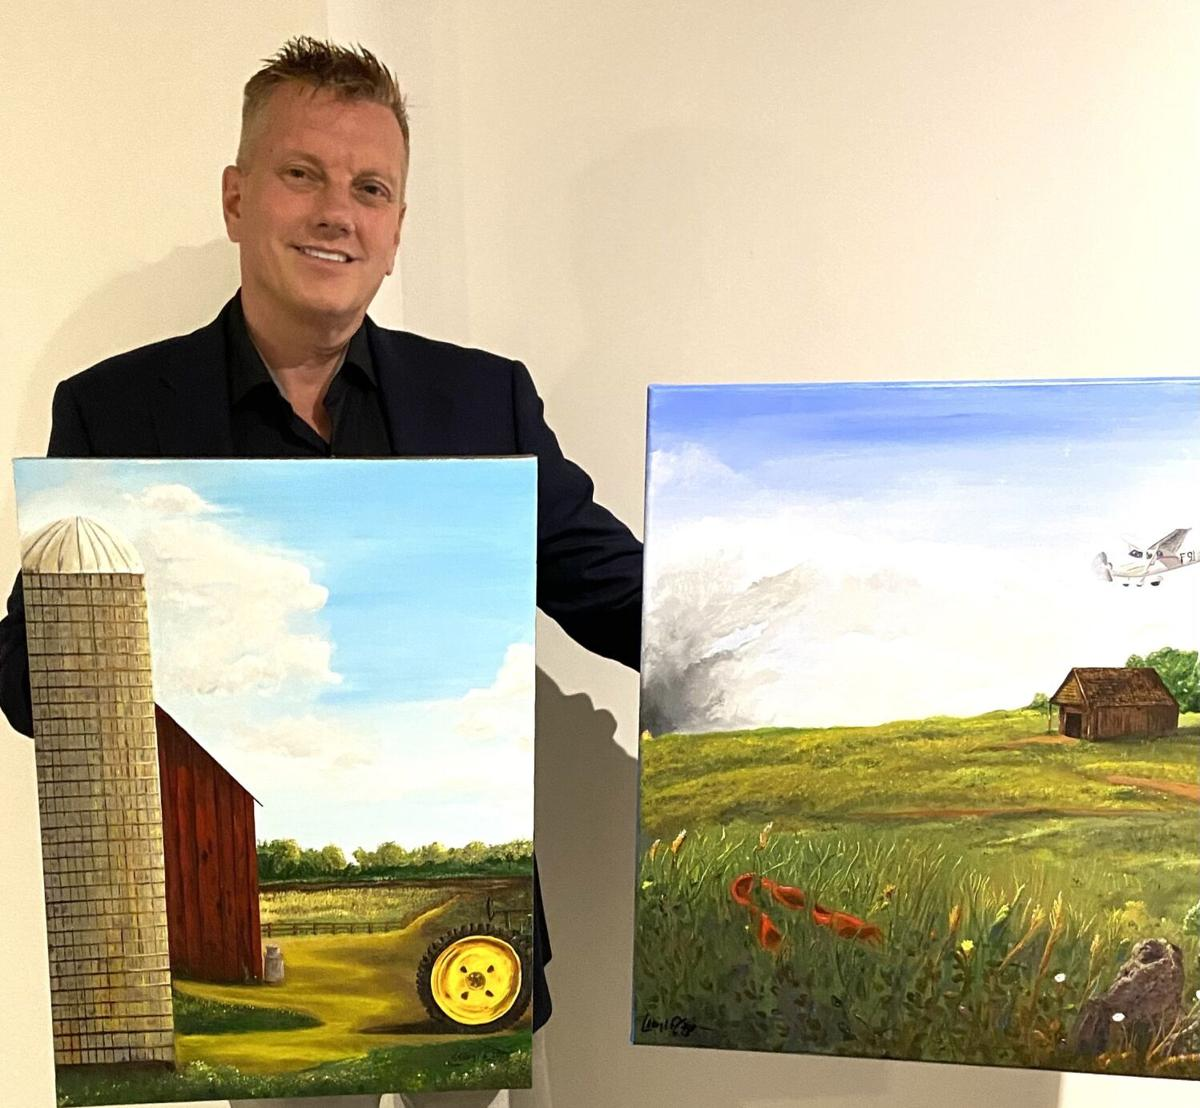 Craig Biorn with his original book cover paintings he painted for his books, Bilan's Journey of Hope and Bah Bah for Barbara